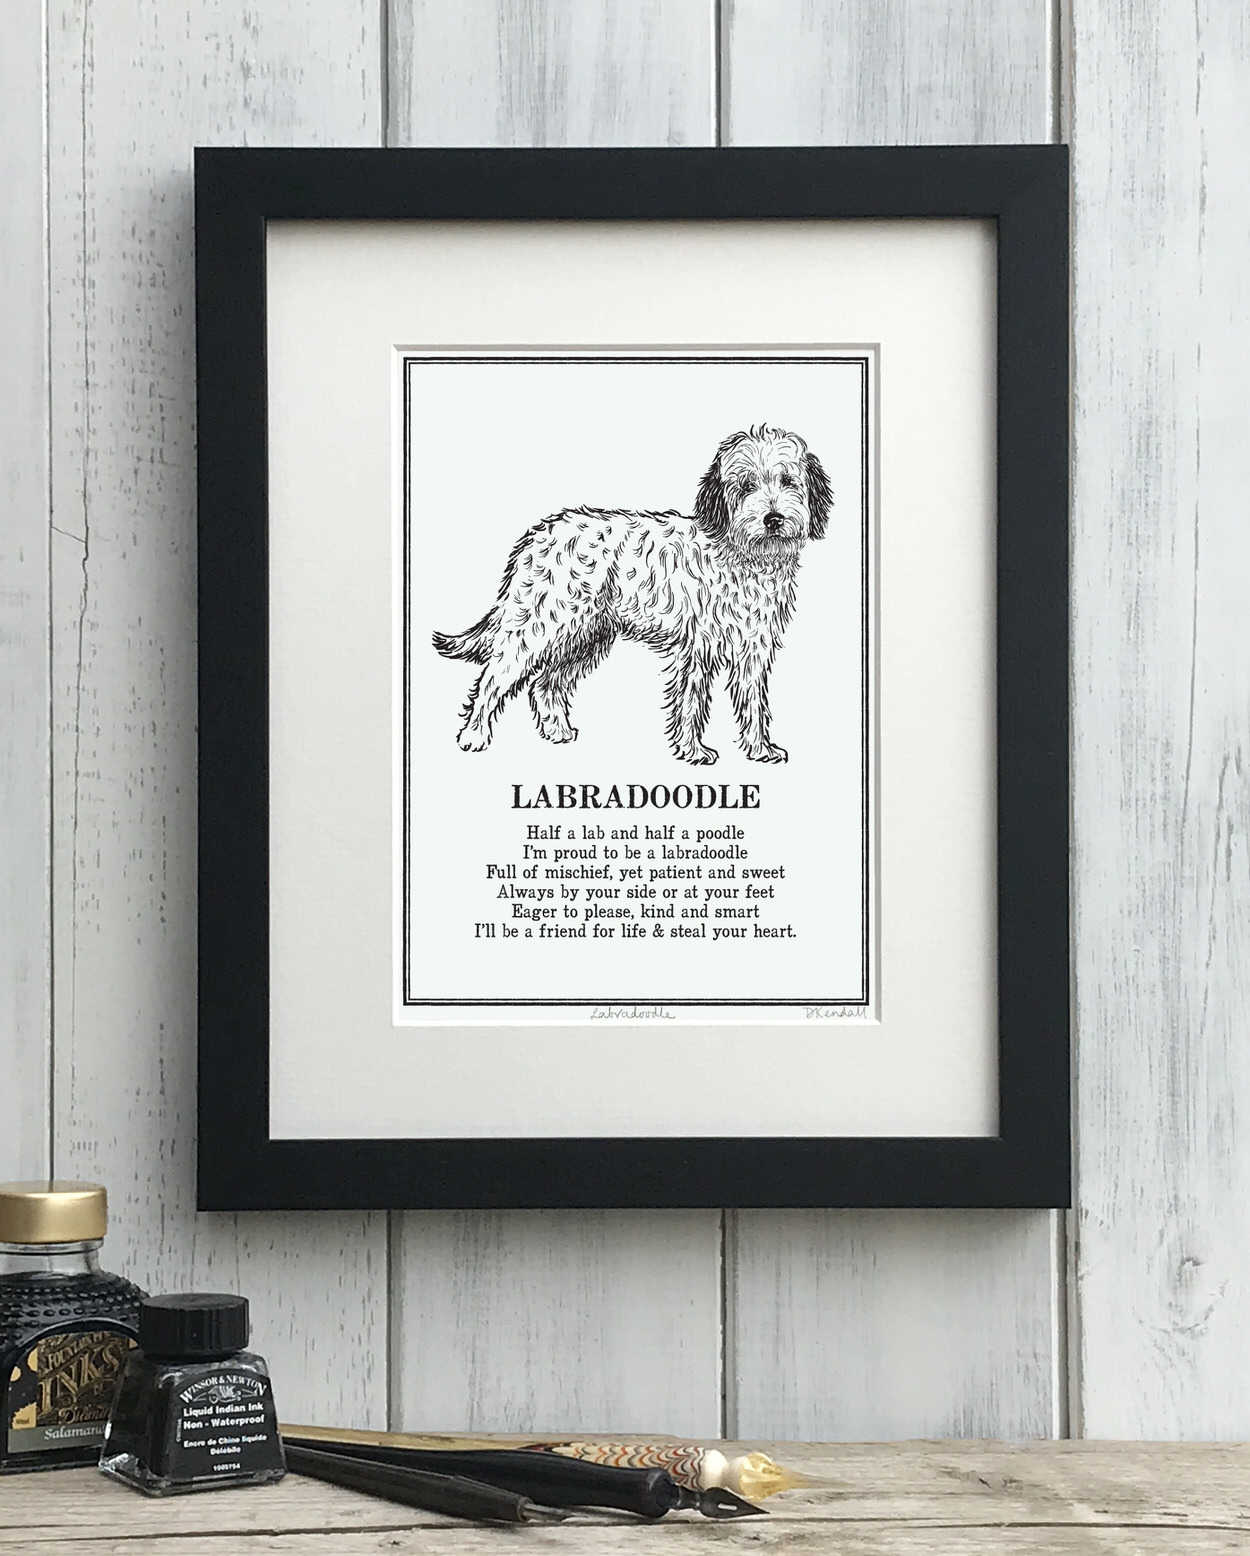 Labradoodle Illustrated Poem Print | The Enlightened Hound